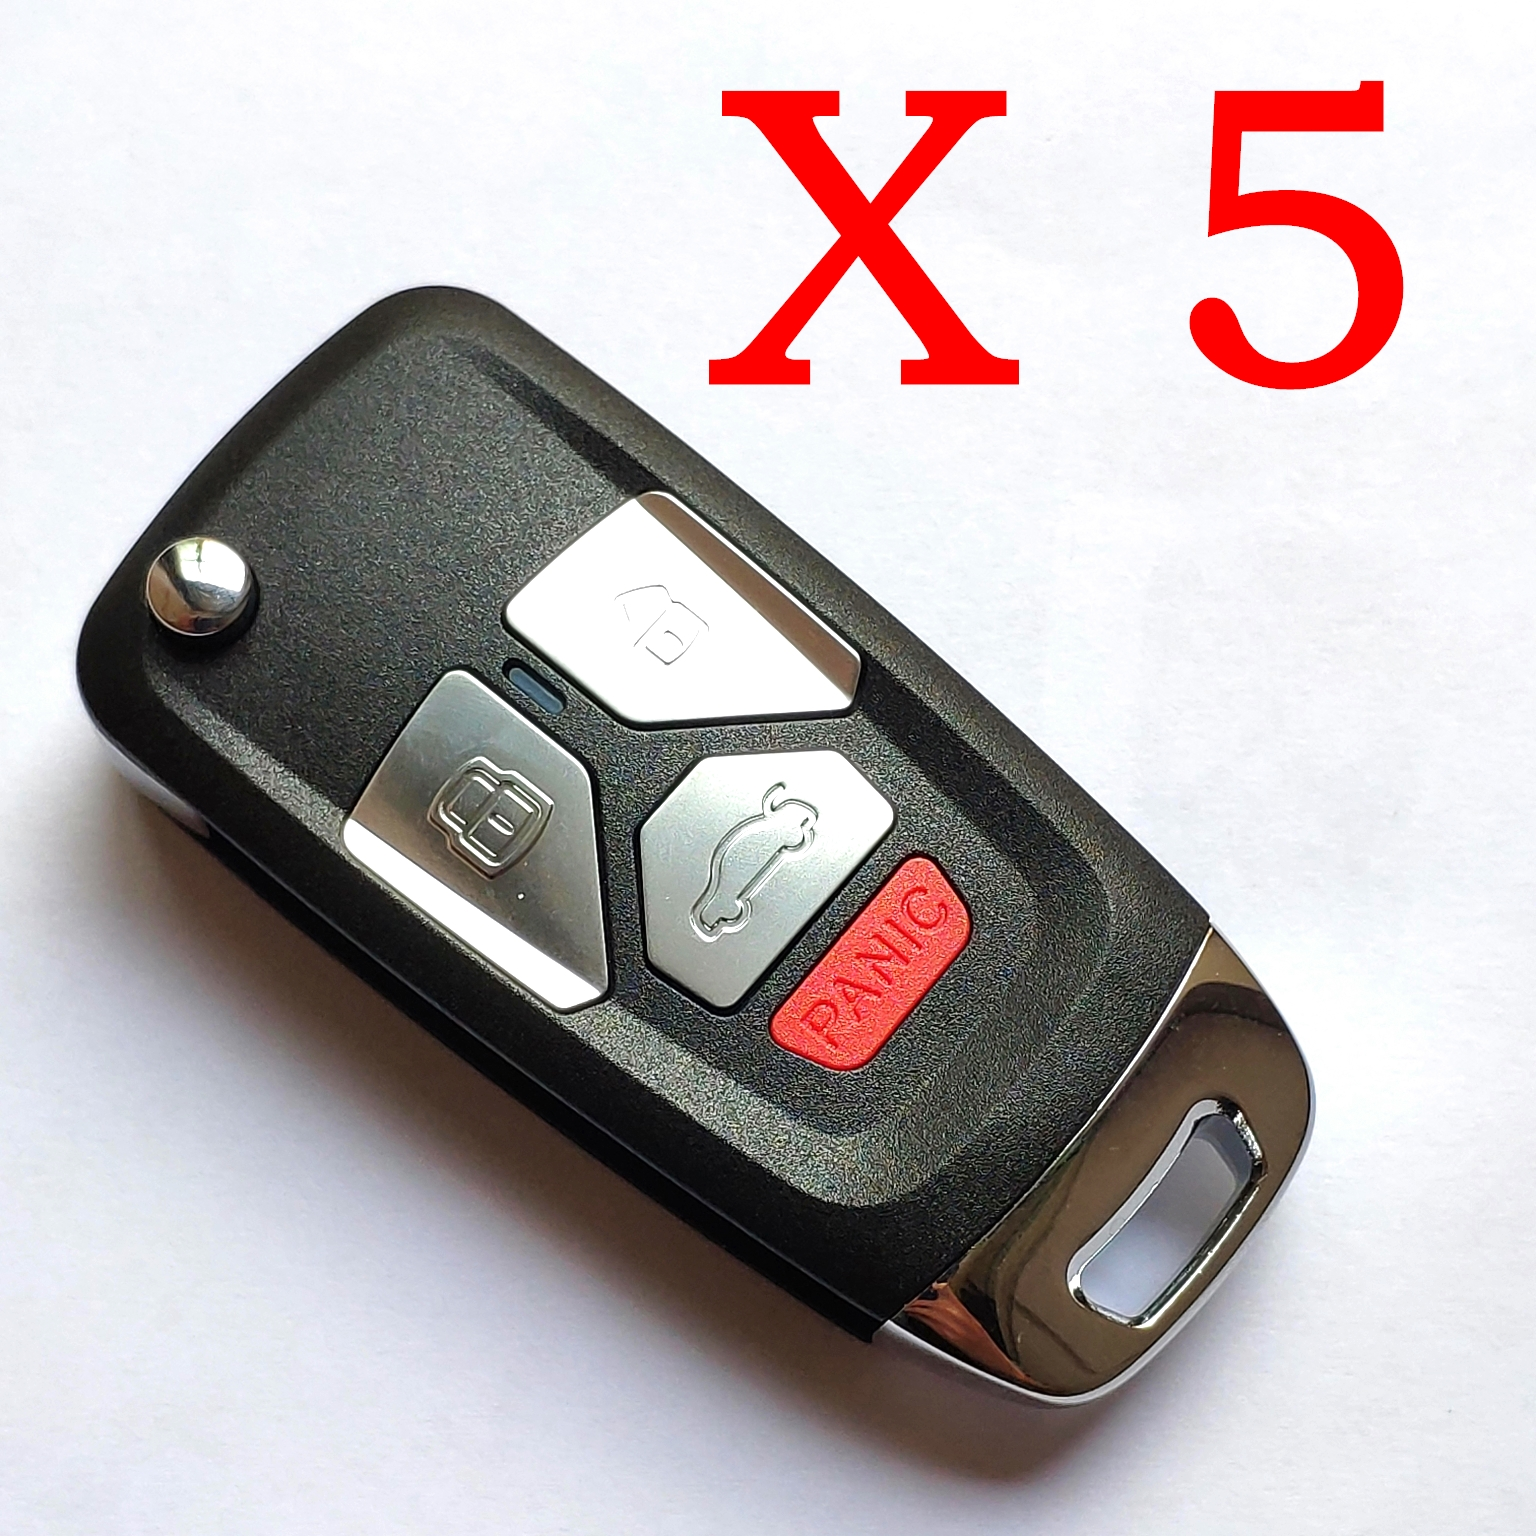 5 pieces Xhorse VVDI Audi Type 2 Universal Remote Control